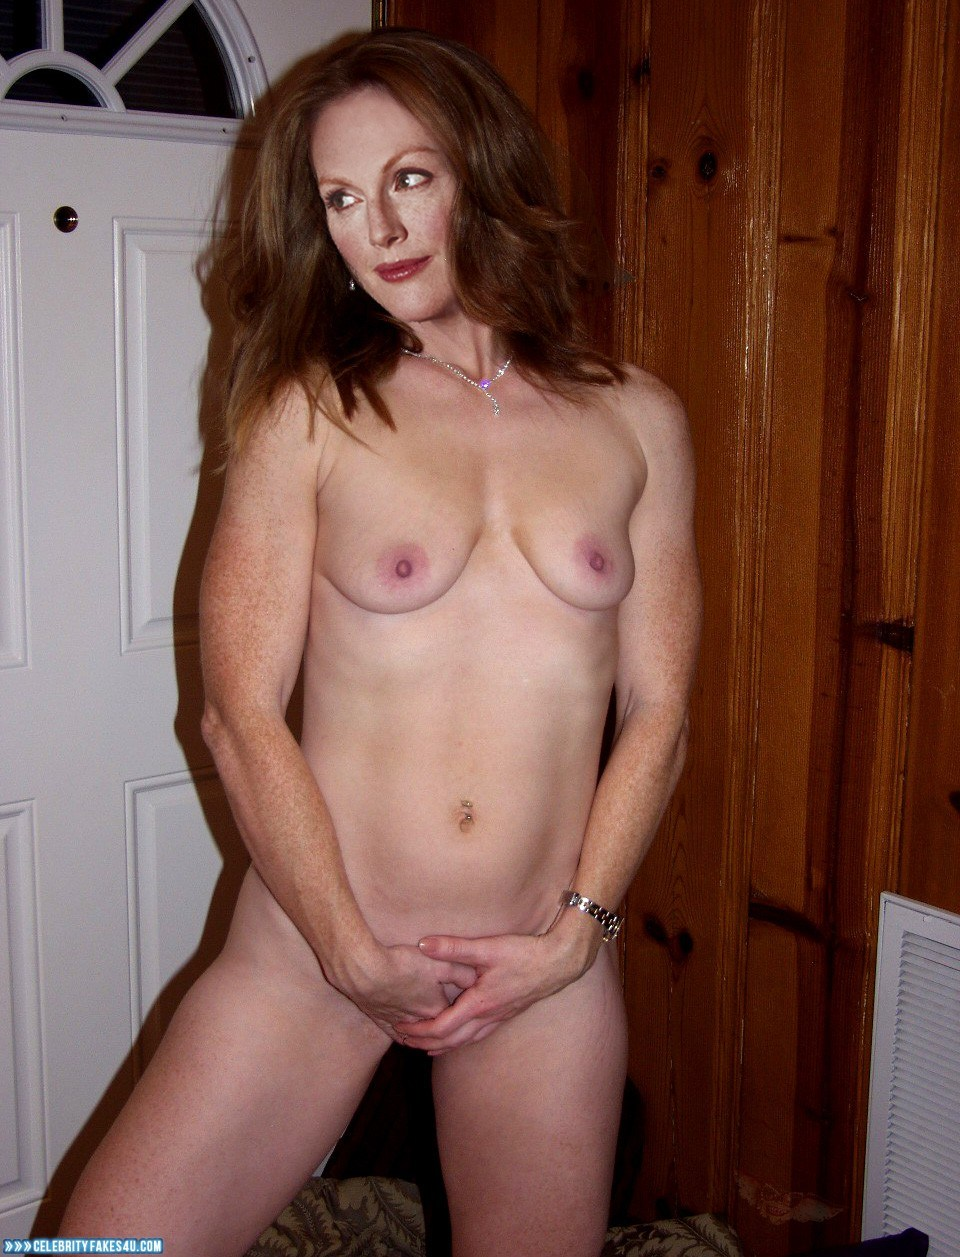 Julianne moore nude sex scene